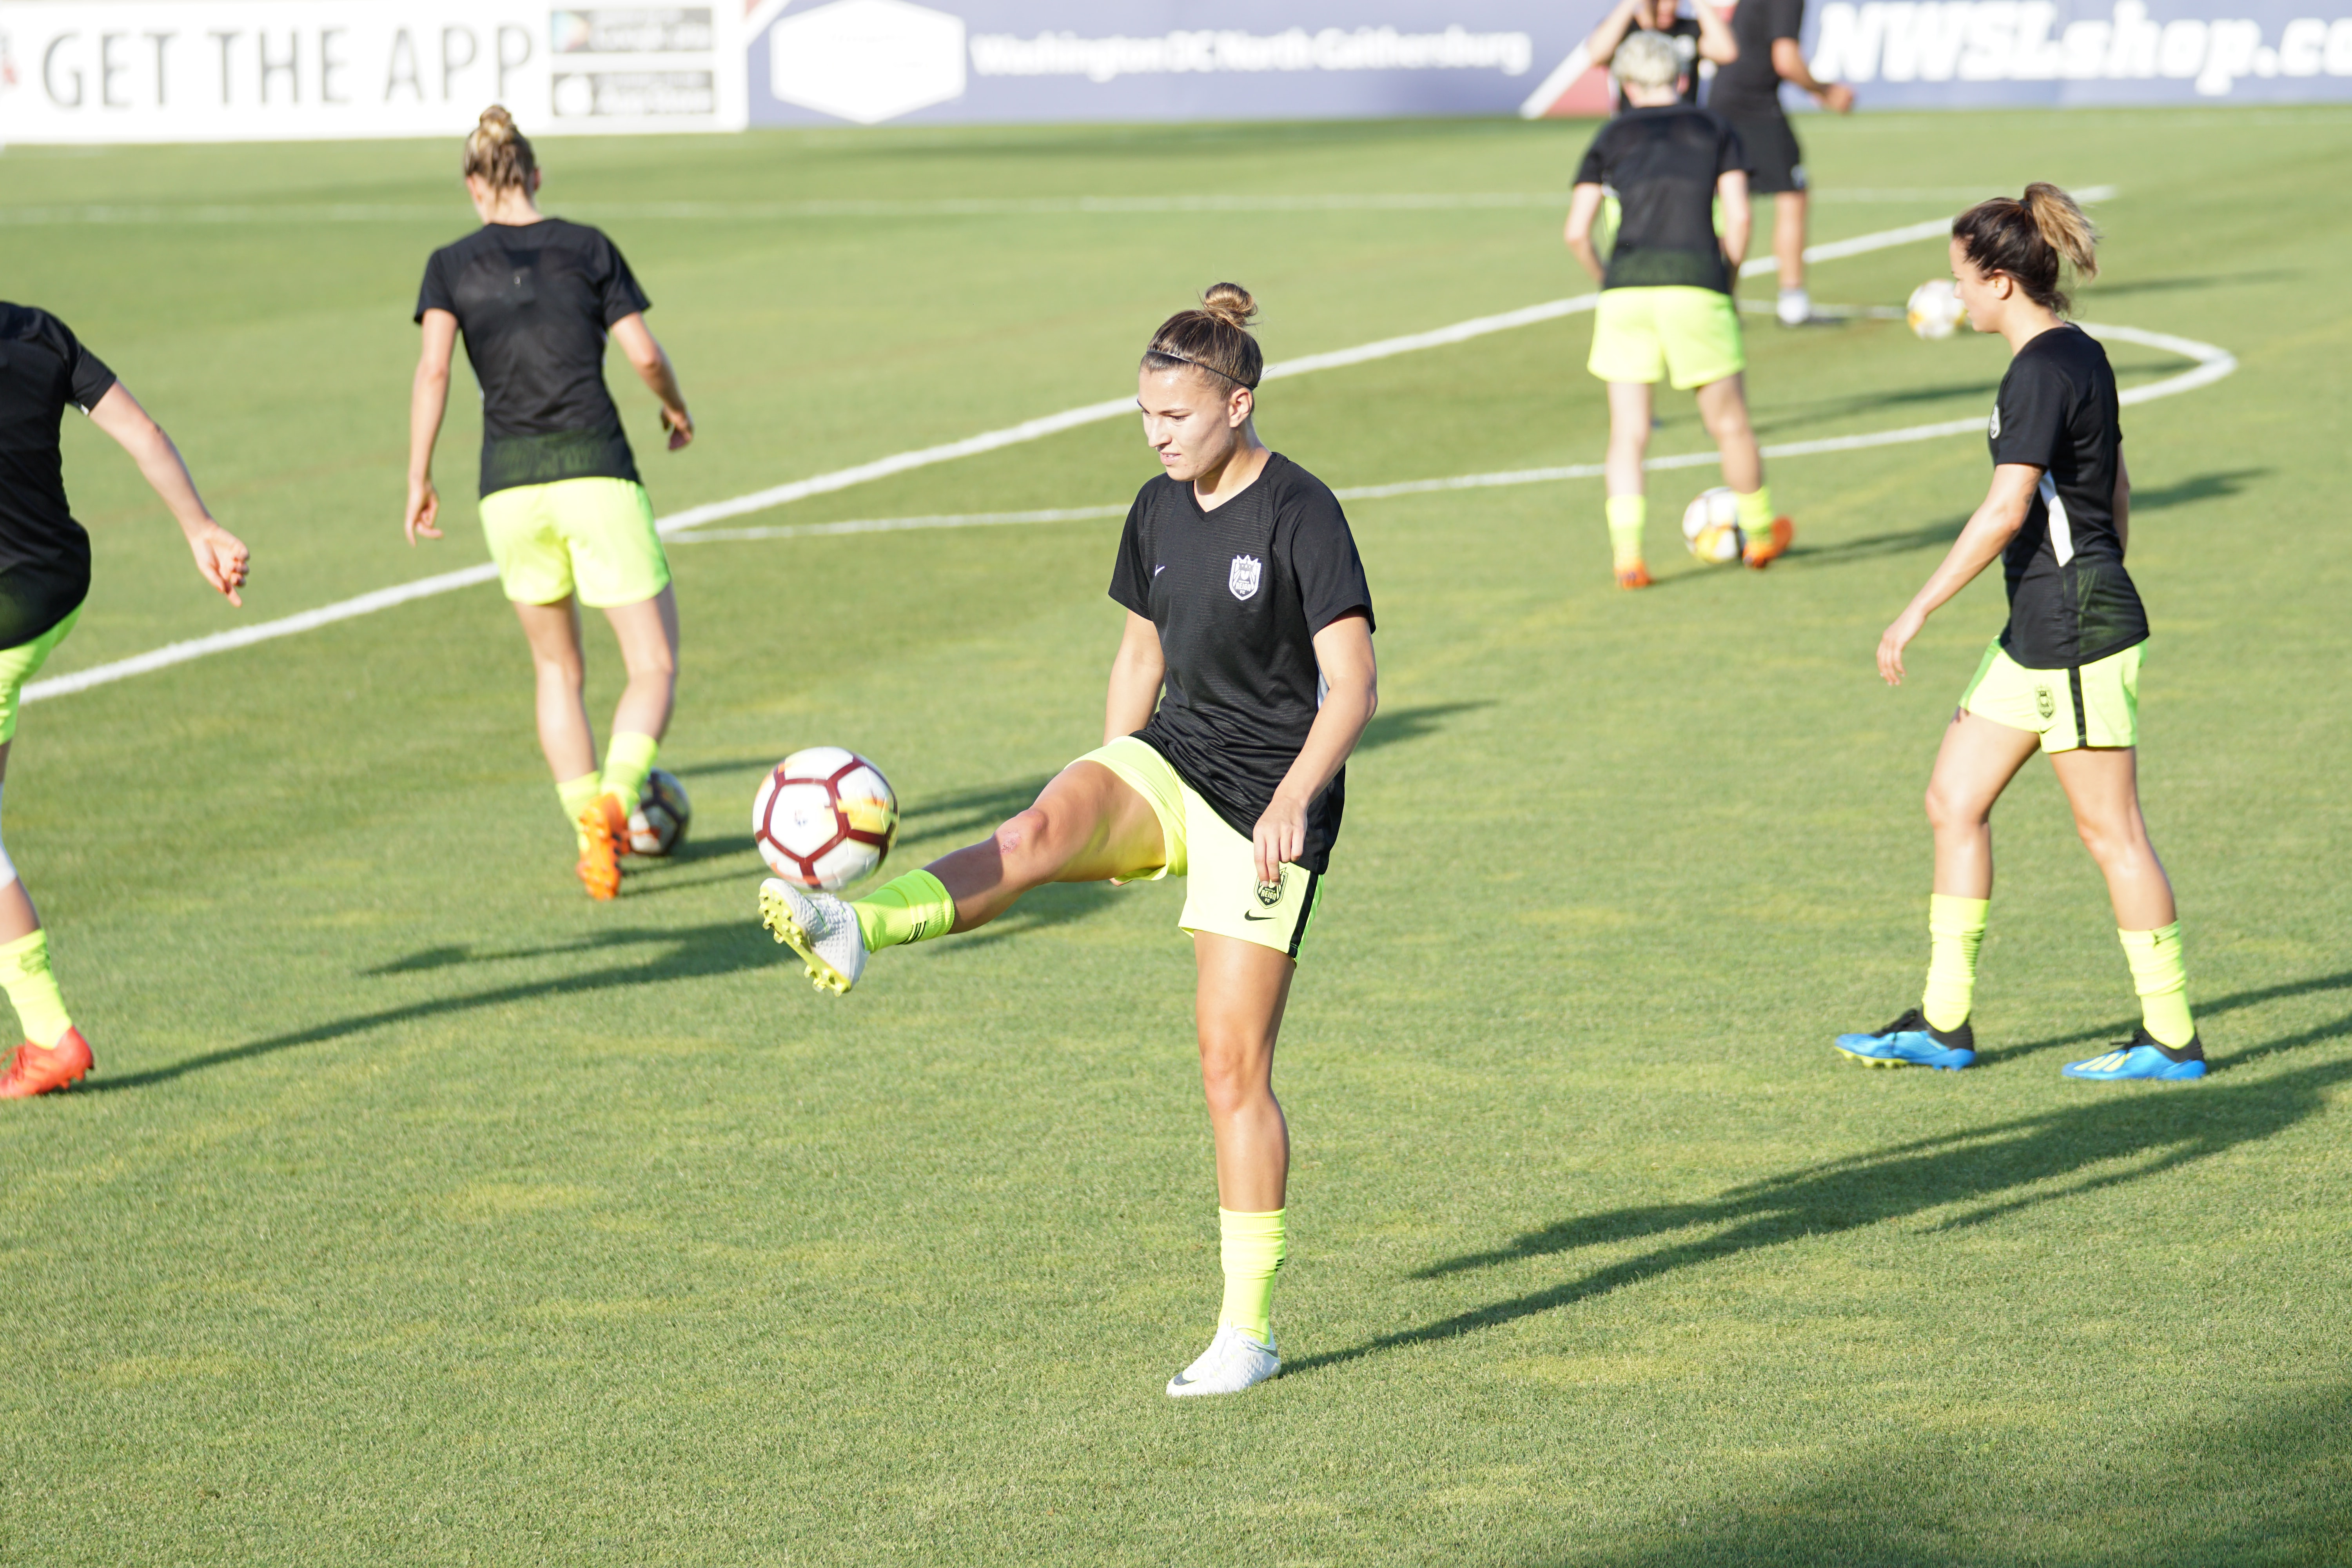 Women soccer training